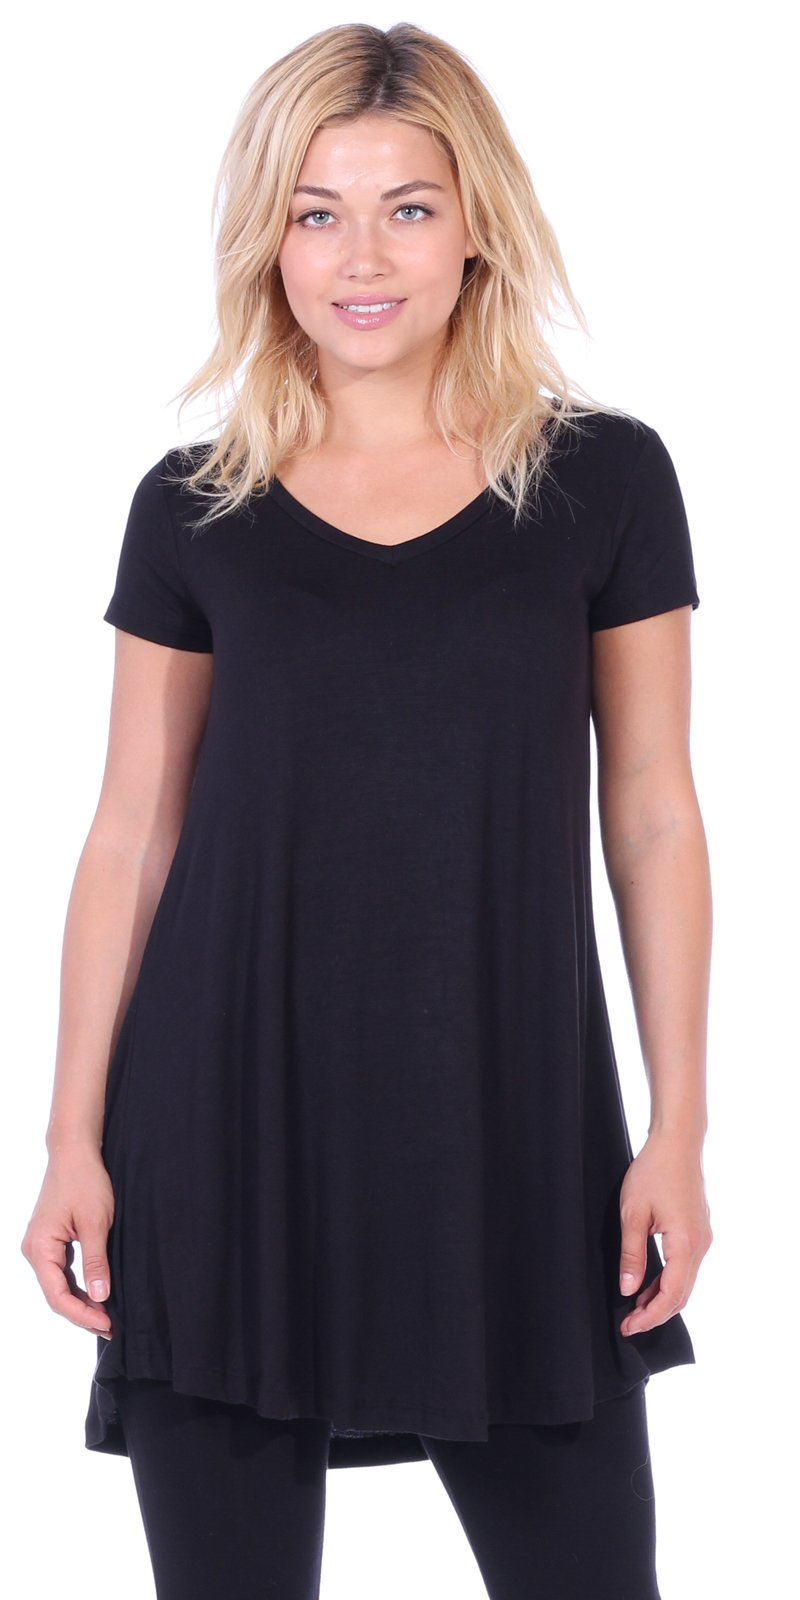 Popana Women's Tunic Tops for Leggings Short Sleeve Summer Shirt Made in USA Large Black